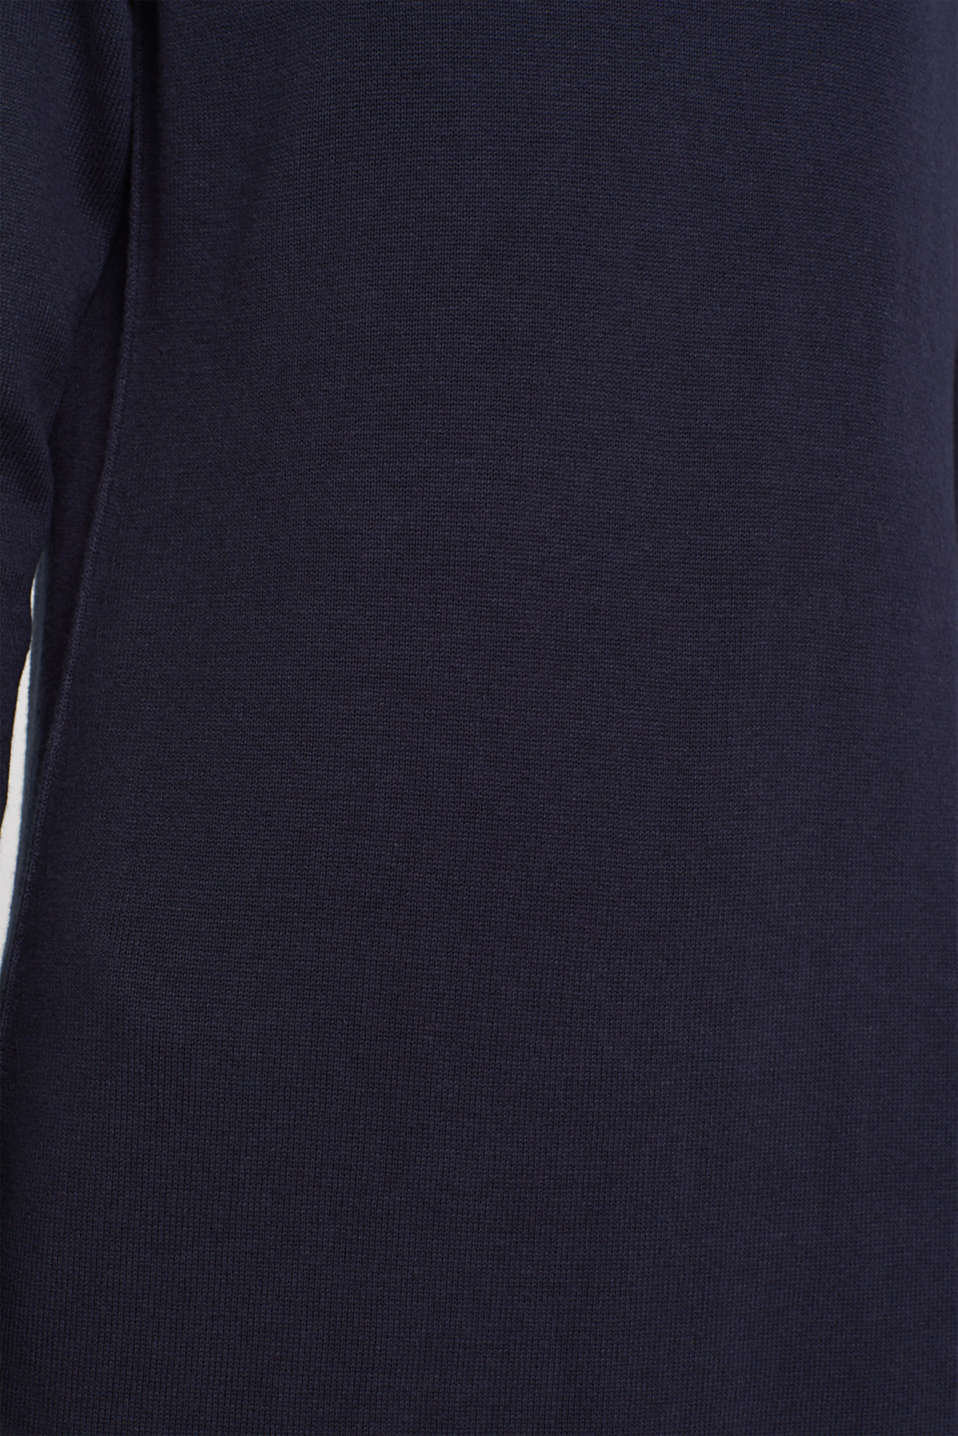 Knitted dress in a basic look, NAVY, detail image number 5